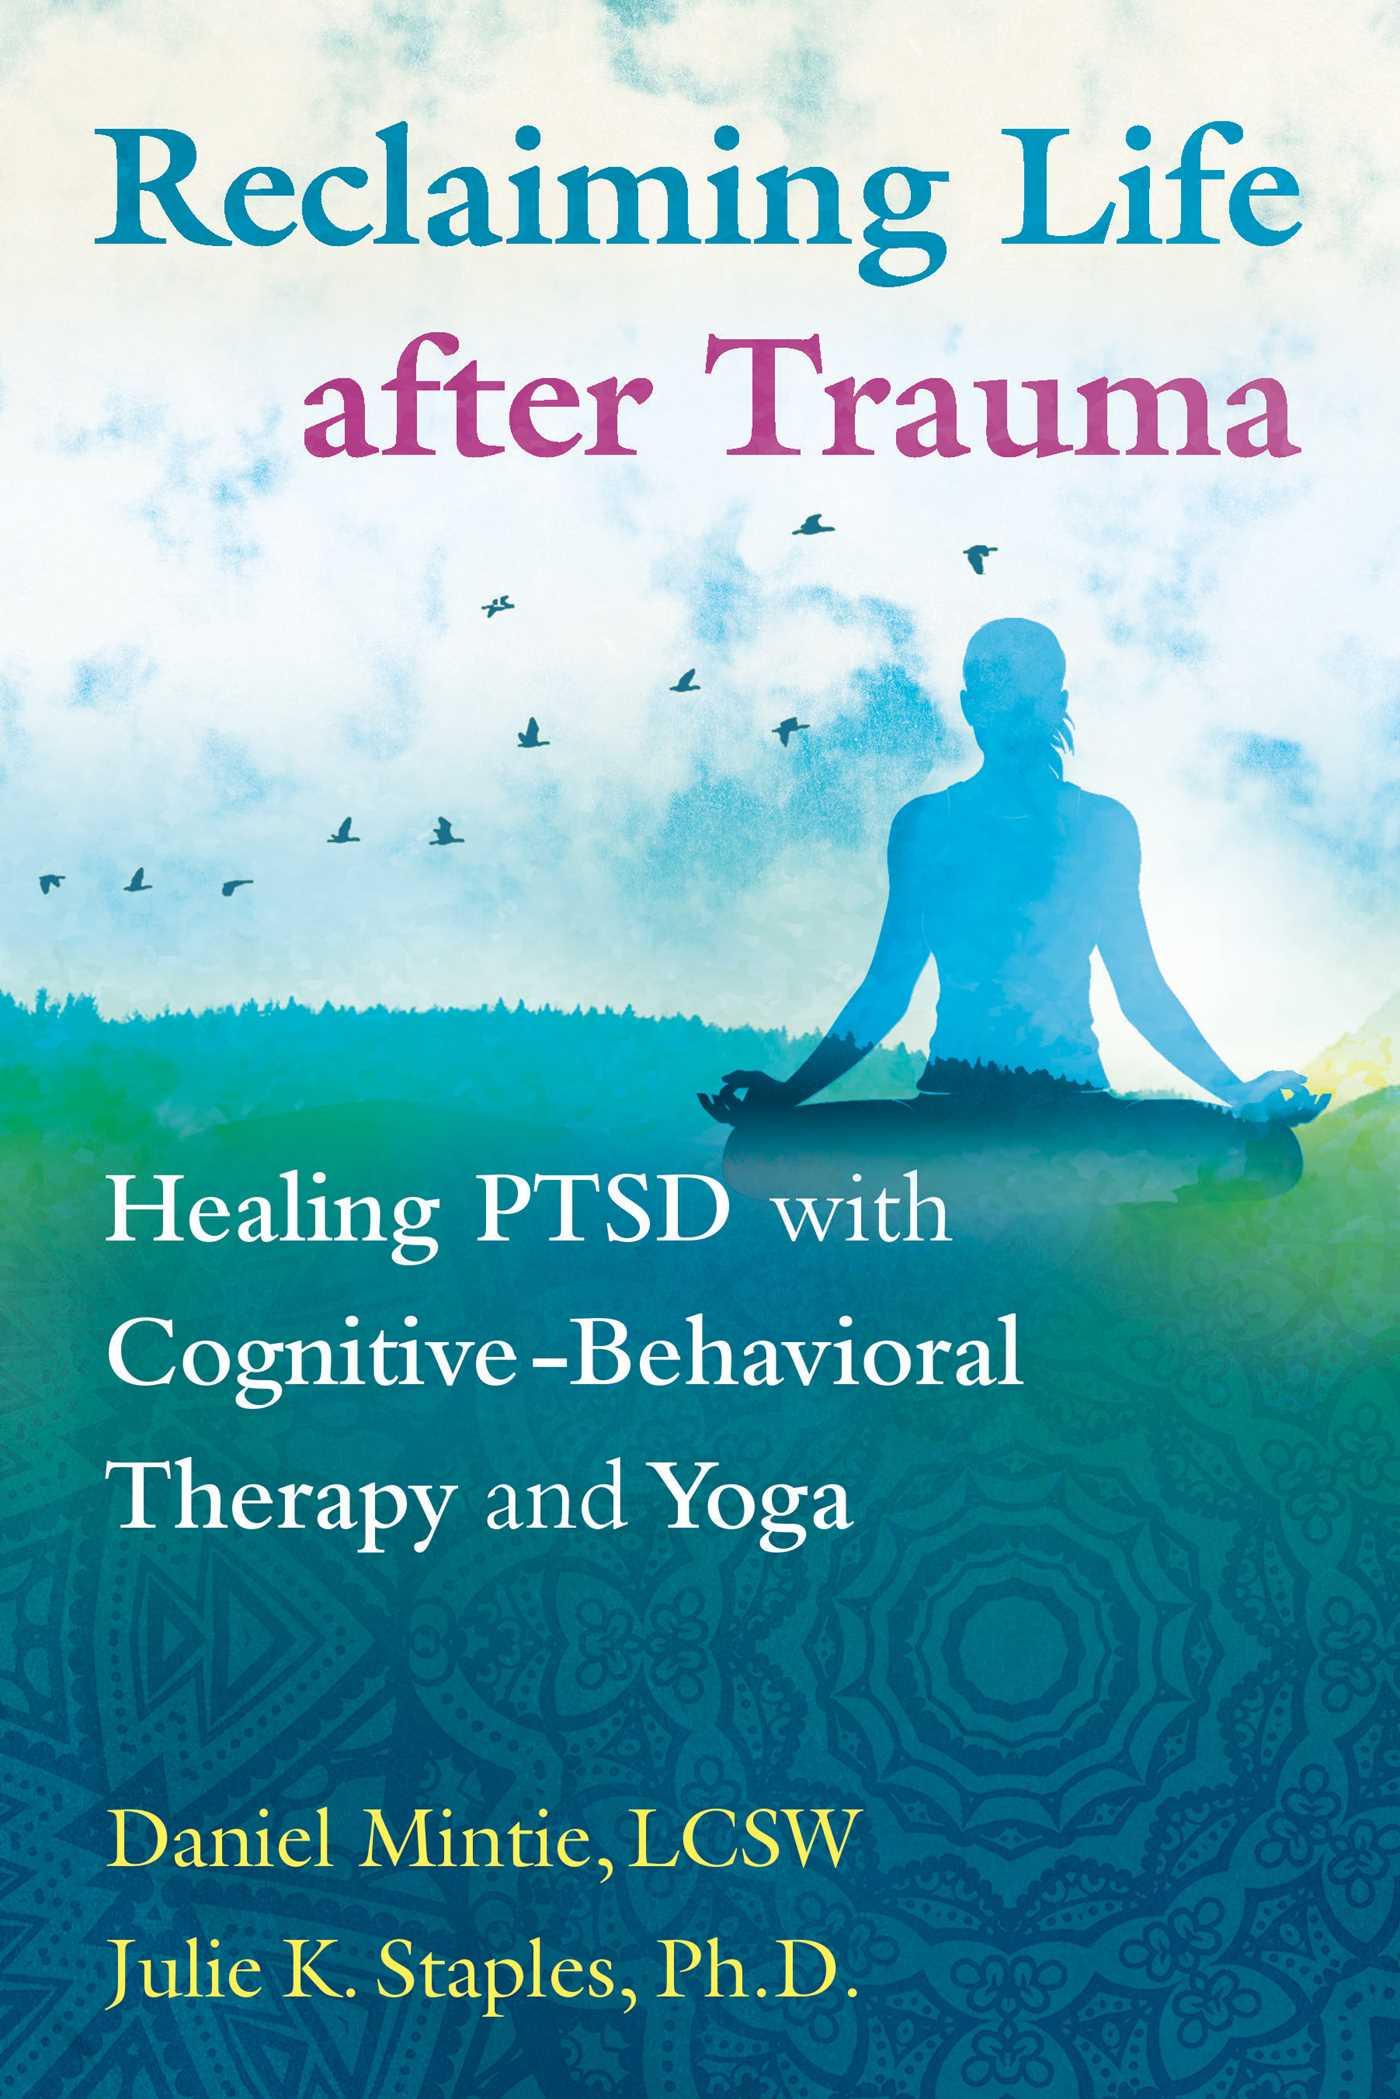 Reclaiming life after trauma 9781620556344 hr